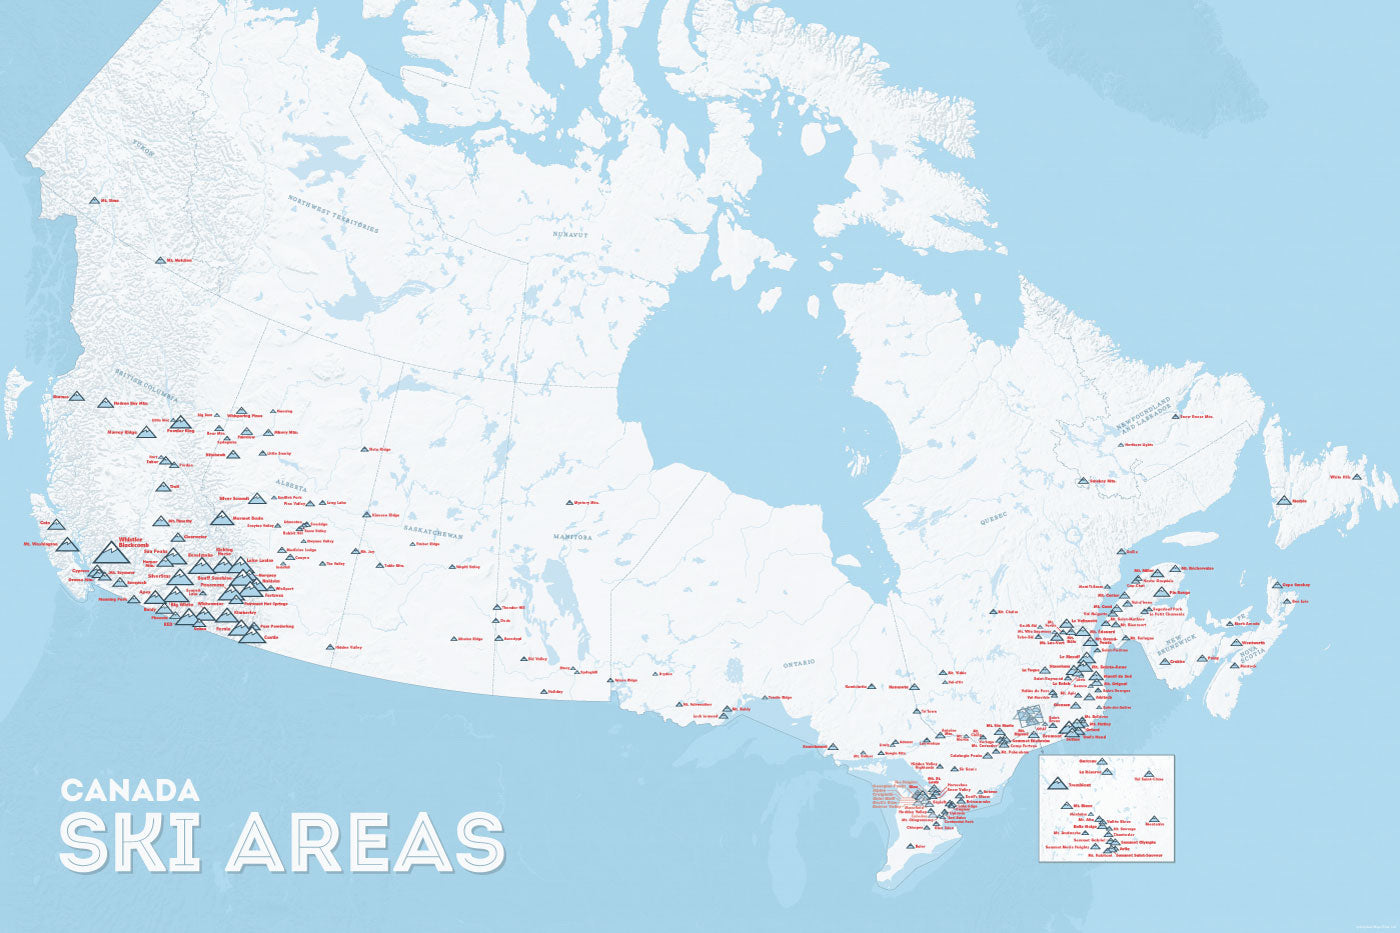 Canada Skiing Resorts Map Canada Ski Resorts Map 24x36 Poster   Best Maps Ever